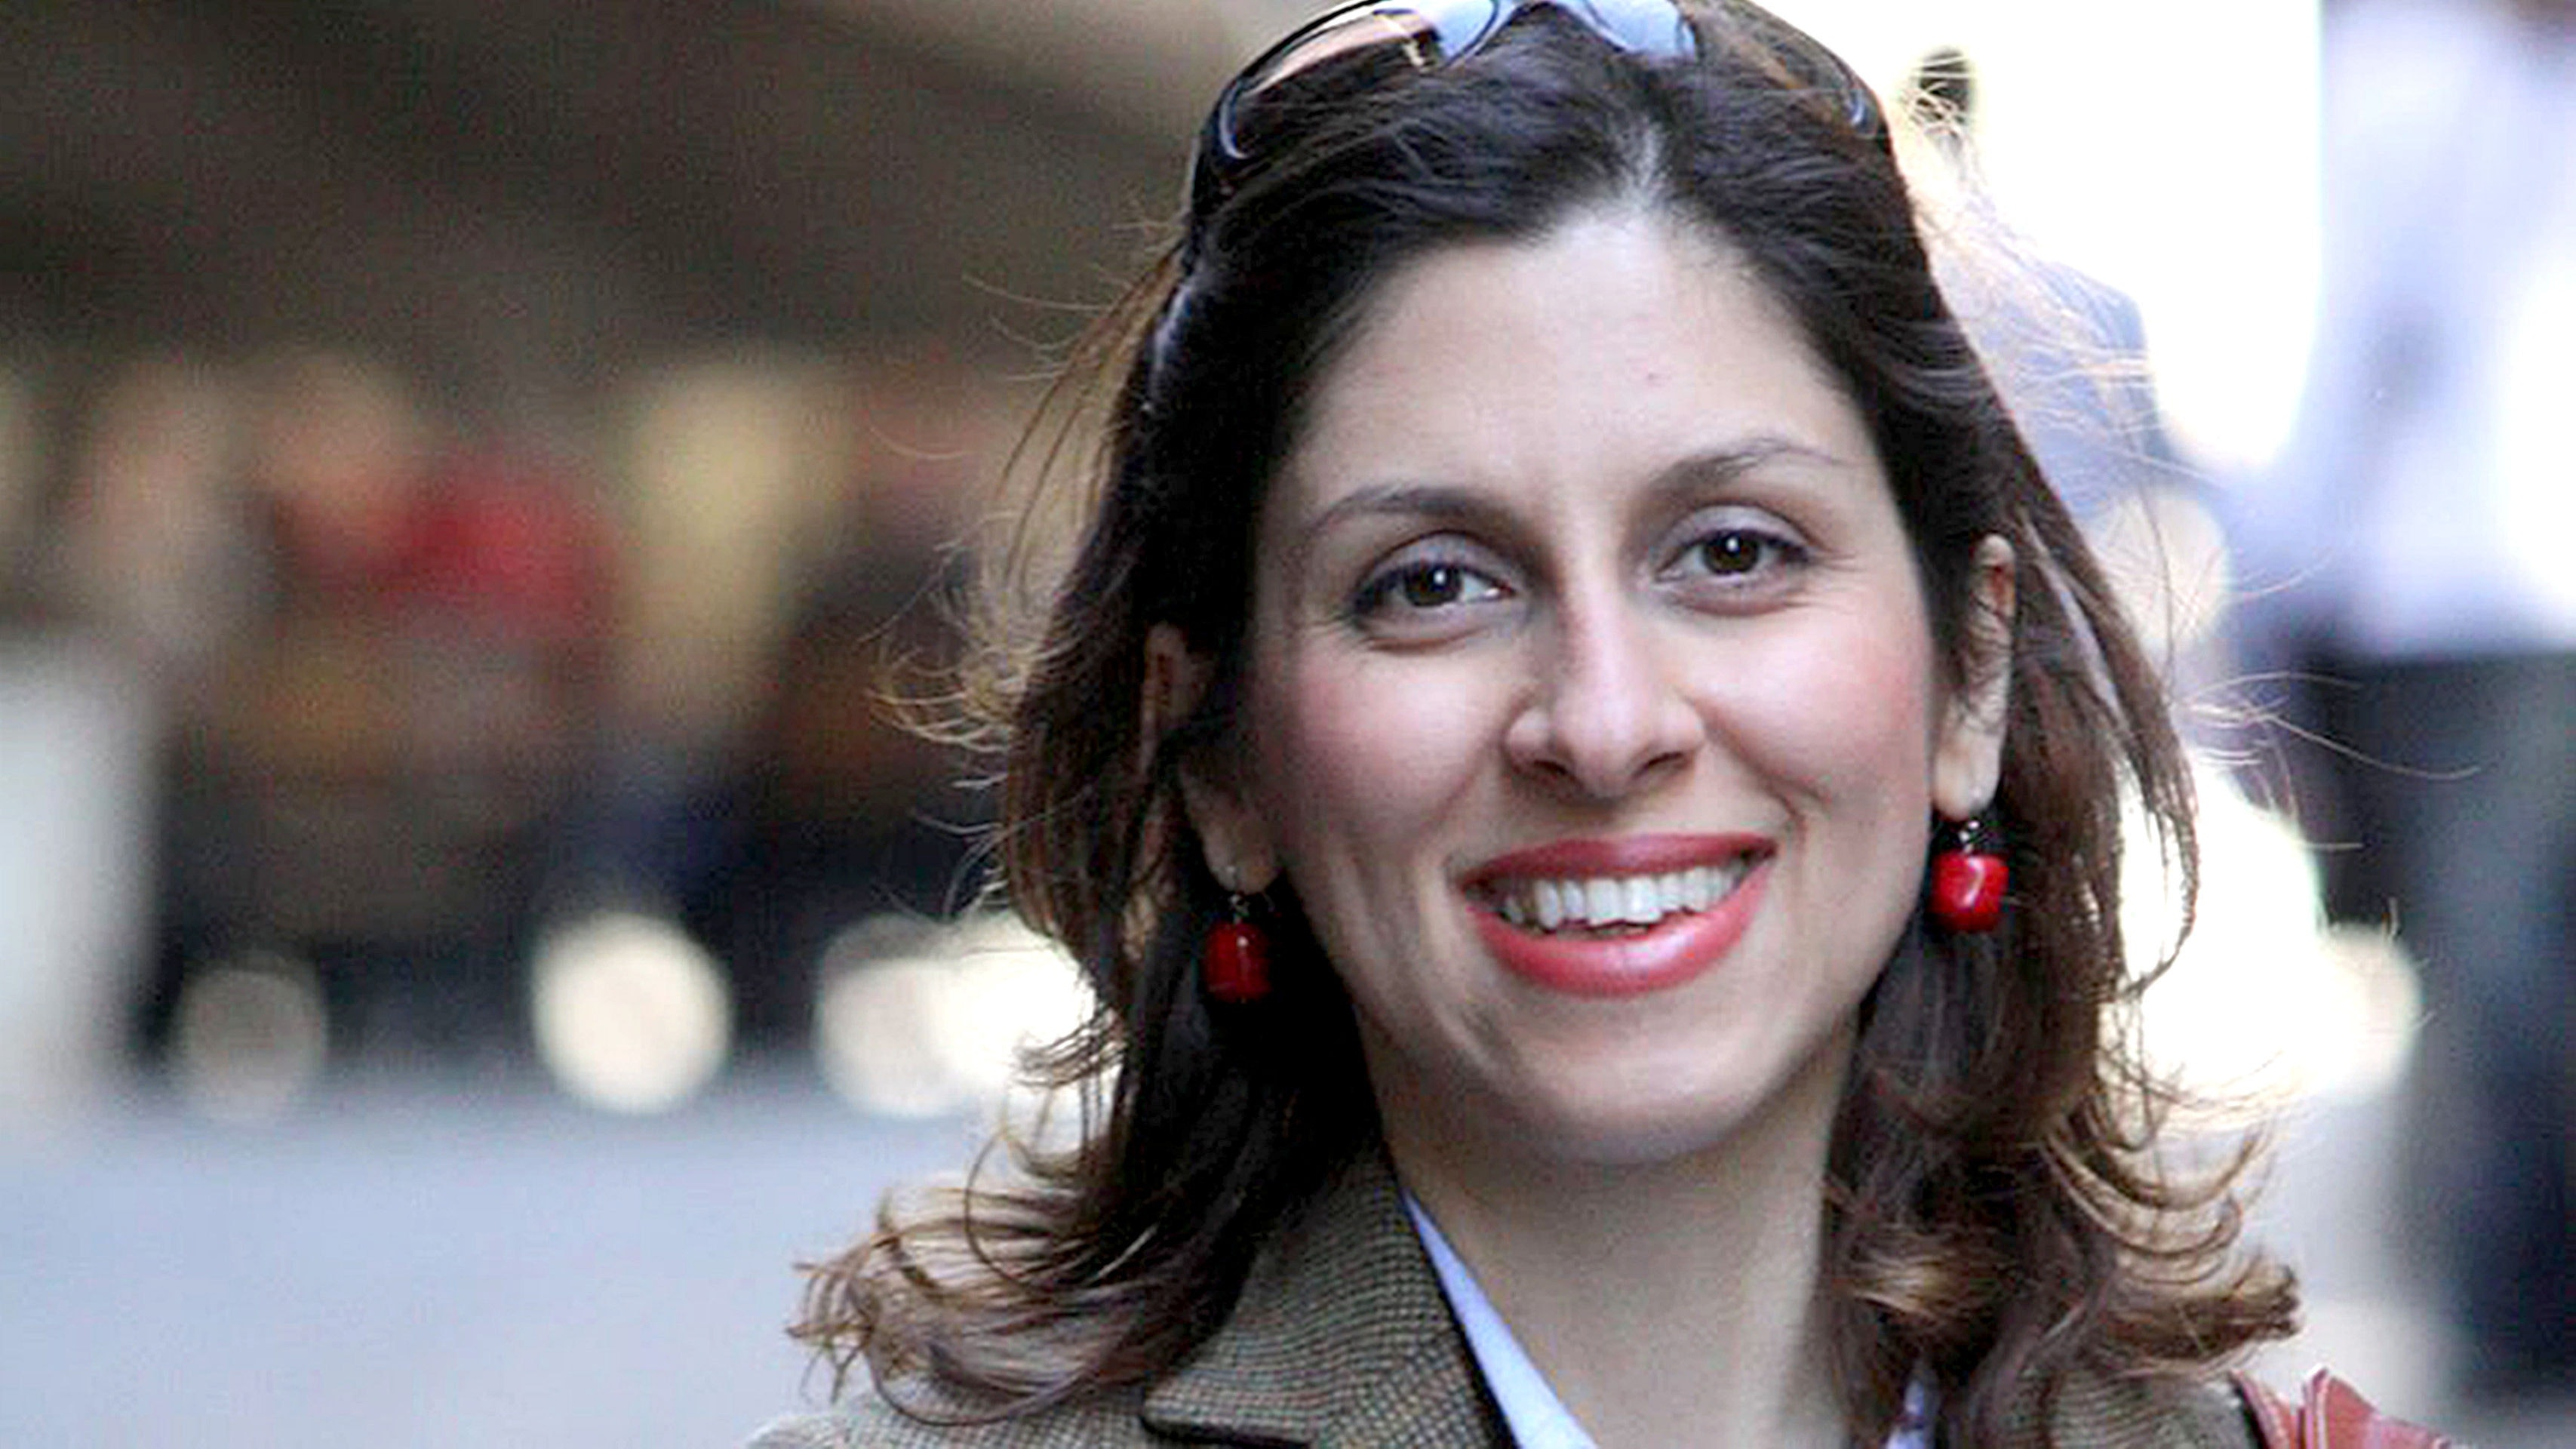 British-Iranian woman jailed in Iran on new hunger strike